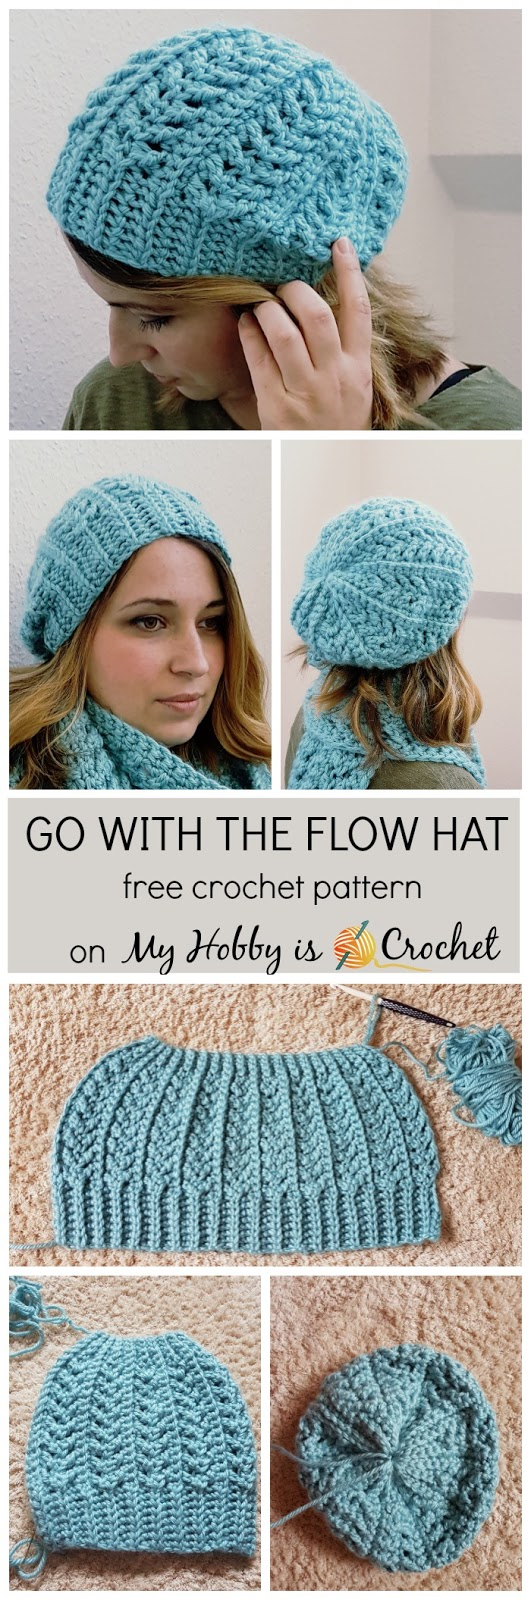 My Hobby Is Crochet Go With The Flow Hat Free Crochet Pattern